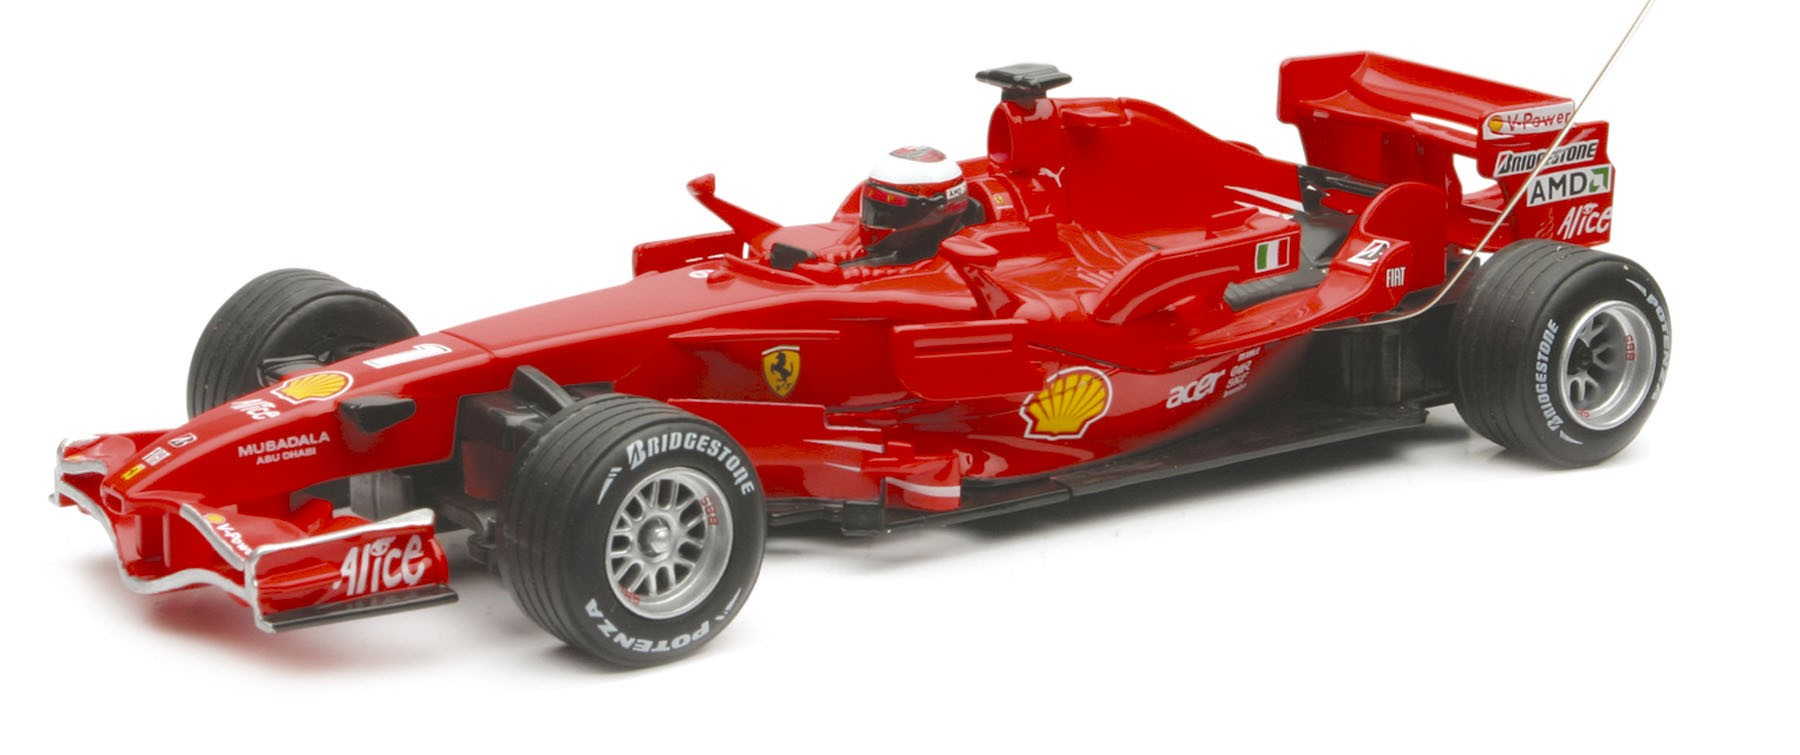 formule 1 ferrari f 2008 n1 kimi raikonen 40 mhz nry 89575a miniplanes. Black Bedroom Furniture Sets. Home Design Ideas